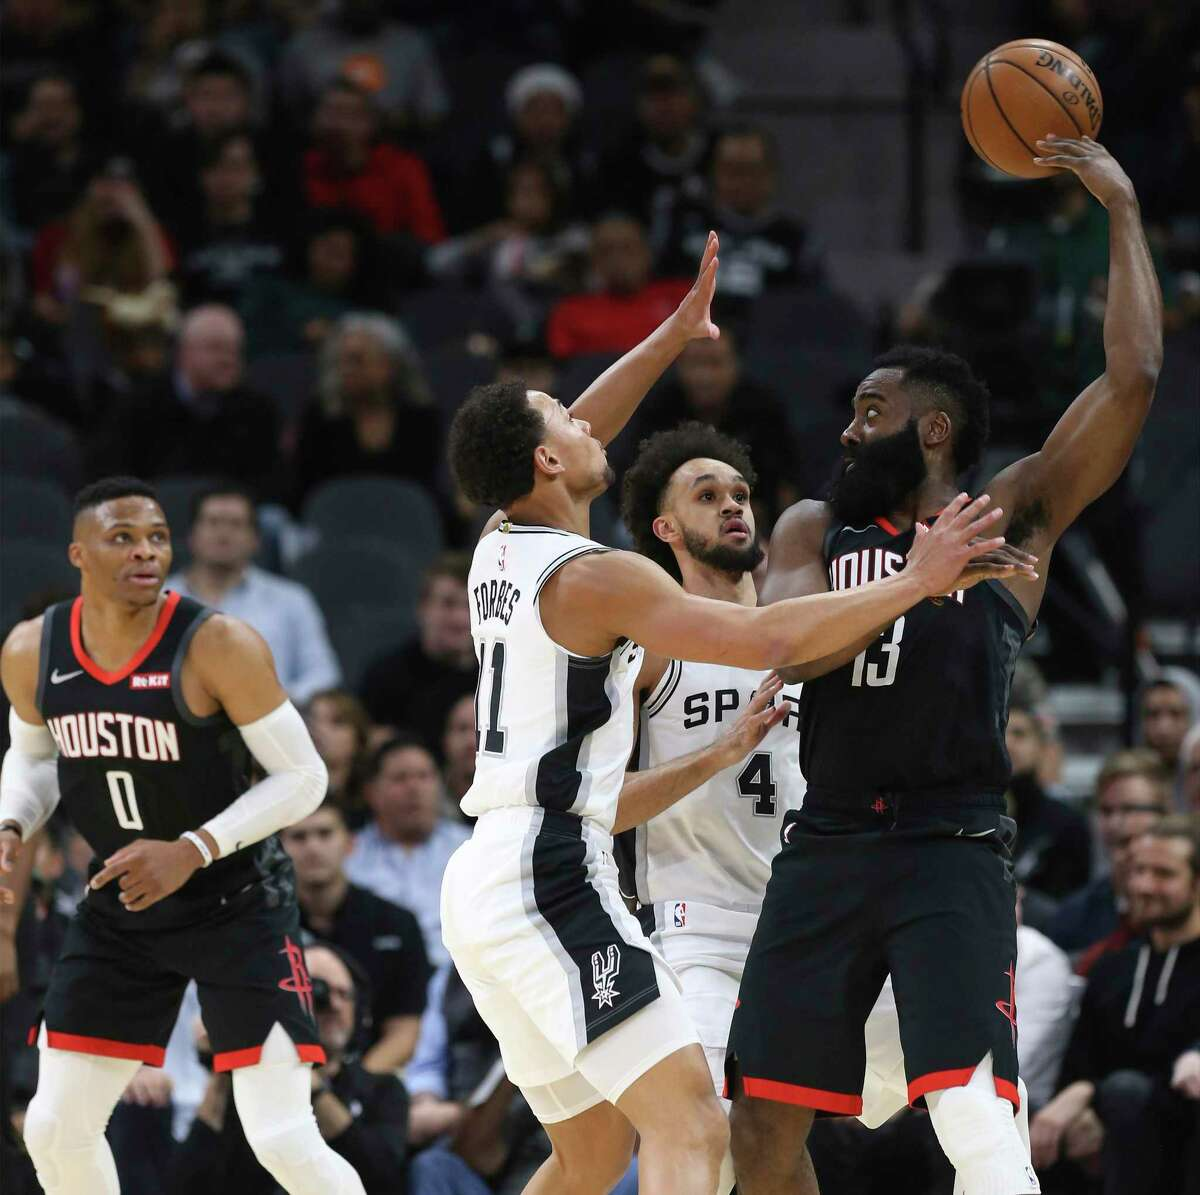 Houston Rockets' James Harden (13) flips the ball to teammate Russell Westbrook (00) while defended by Spurs' Bryn Forbes (11) and Derrick White (04) during their game at the AT&T Center on Tuesday, Dec. 3, 2019.